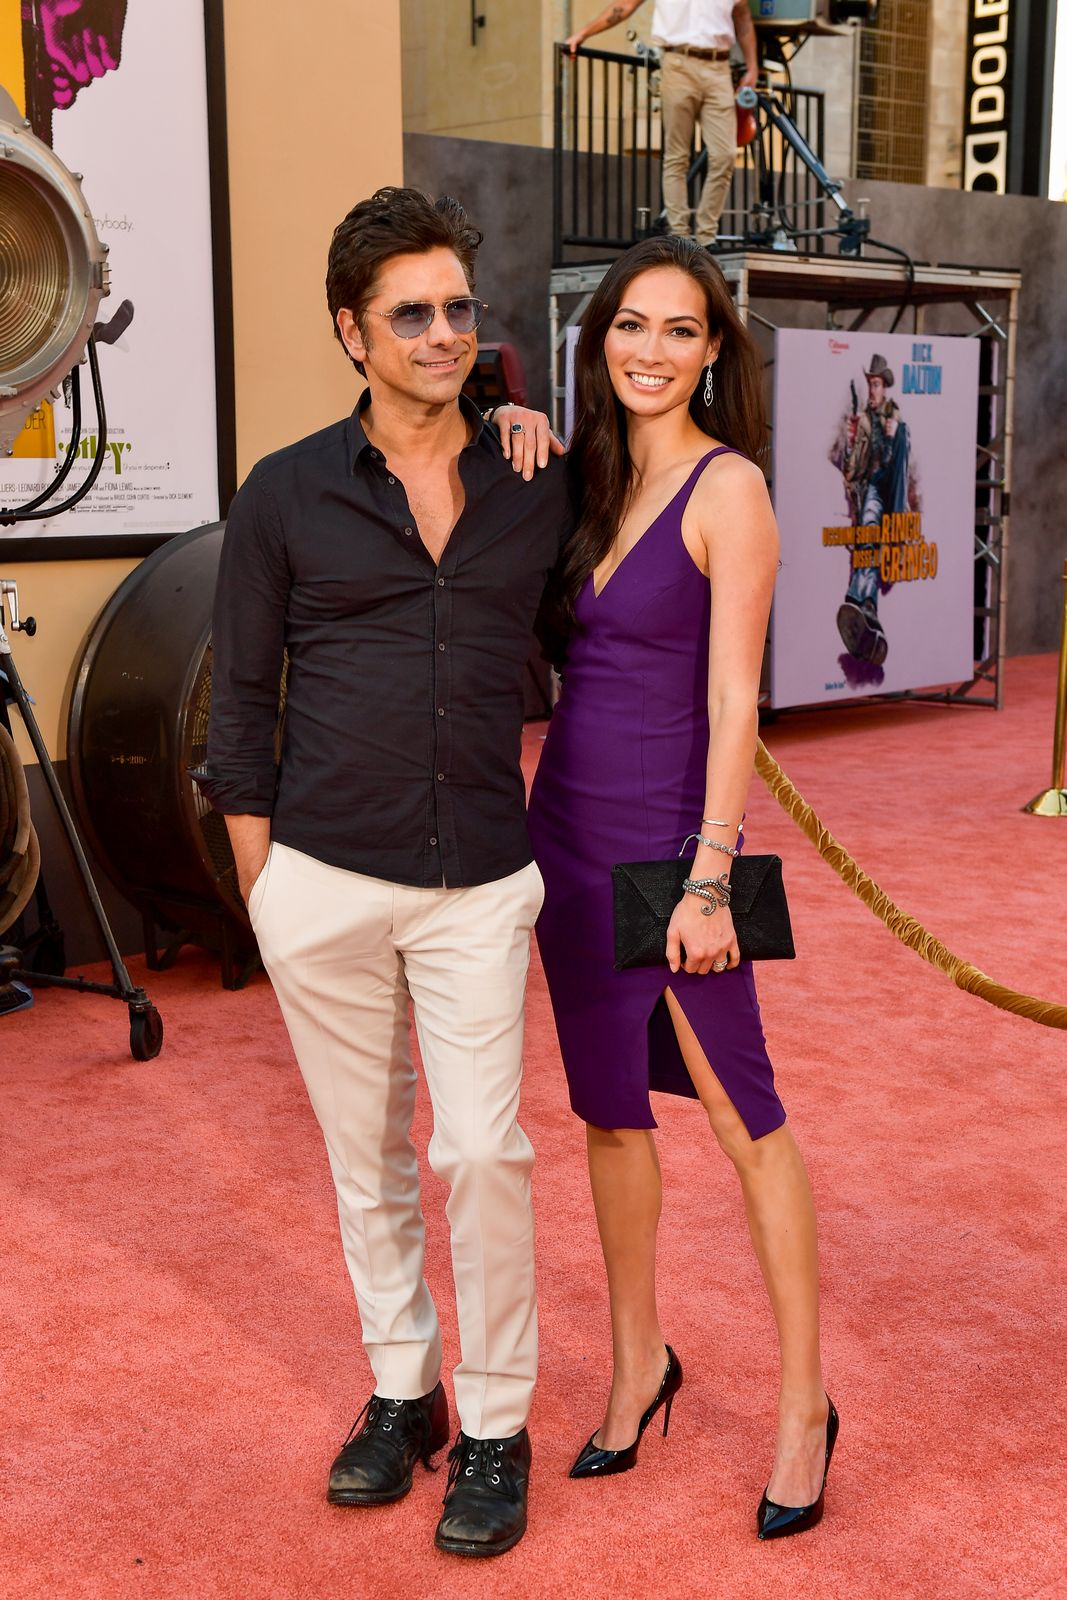 """John Stamos and Caitlin McHugh at the  Los Angeles premiere of """"Once Upon A Time...In Hollywood"""" on July 22, 2019, in Hollywood, California 